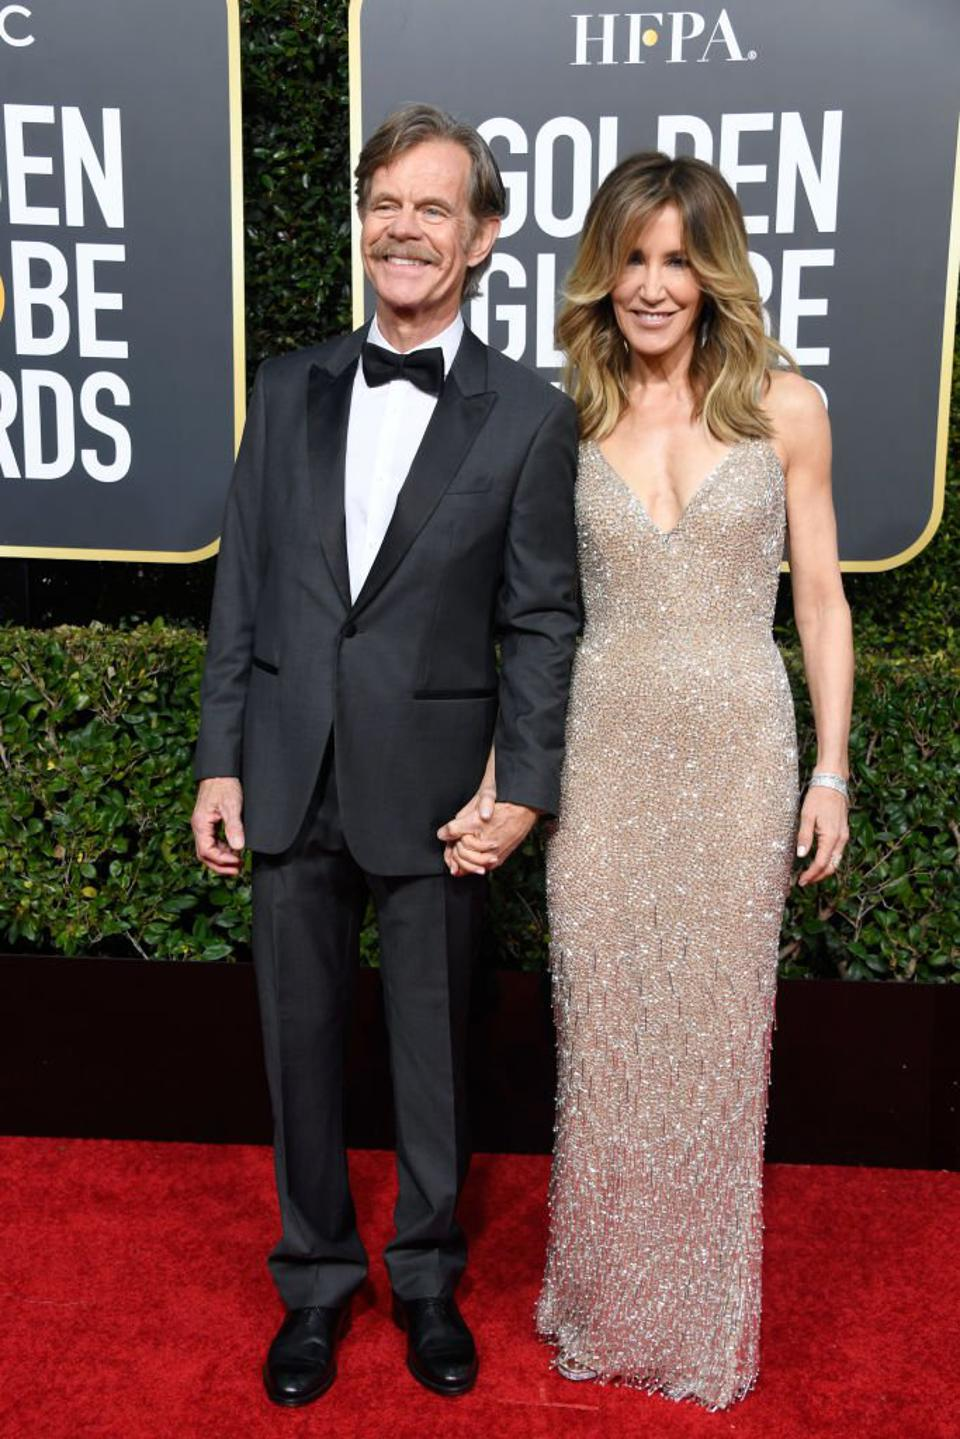 William H. Macy and Felicity Huffman look shamelessly good on the red carpet.